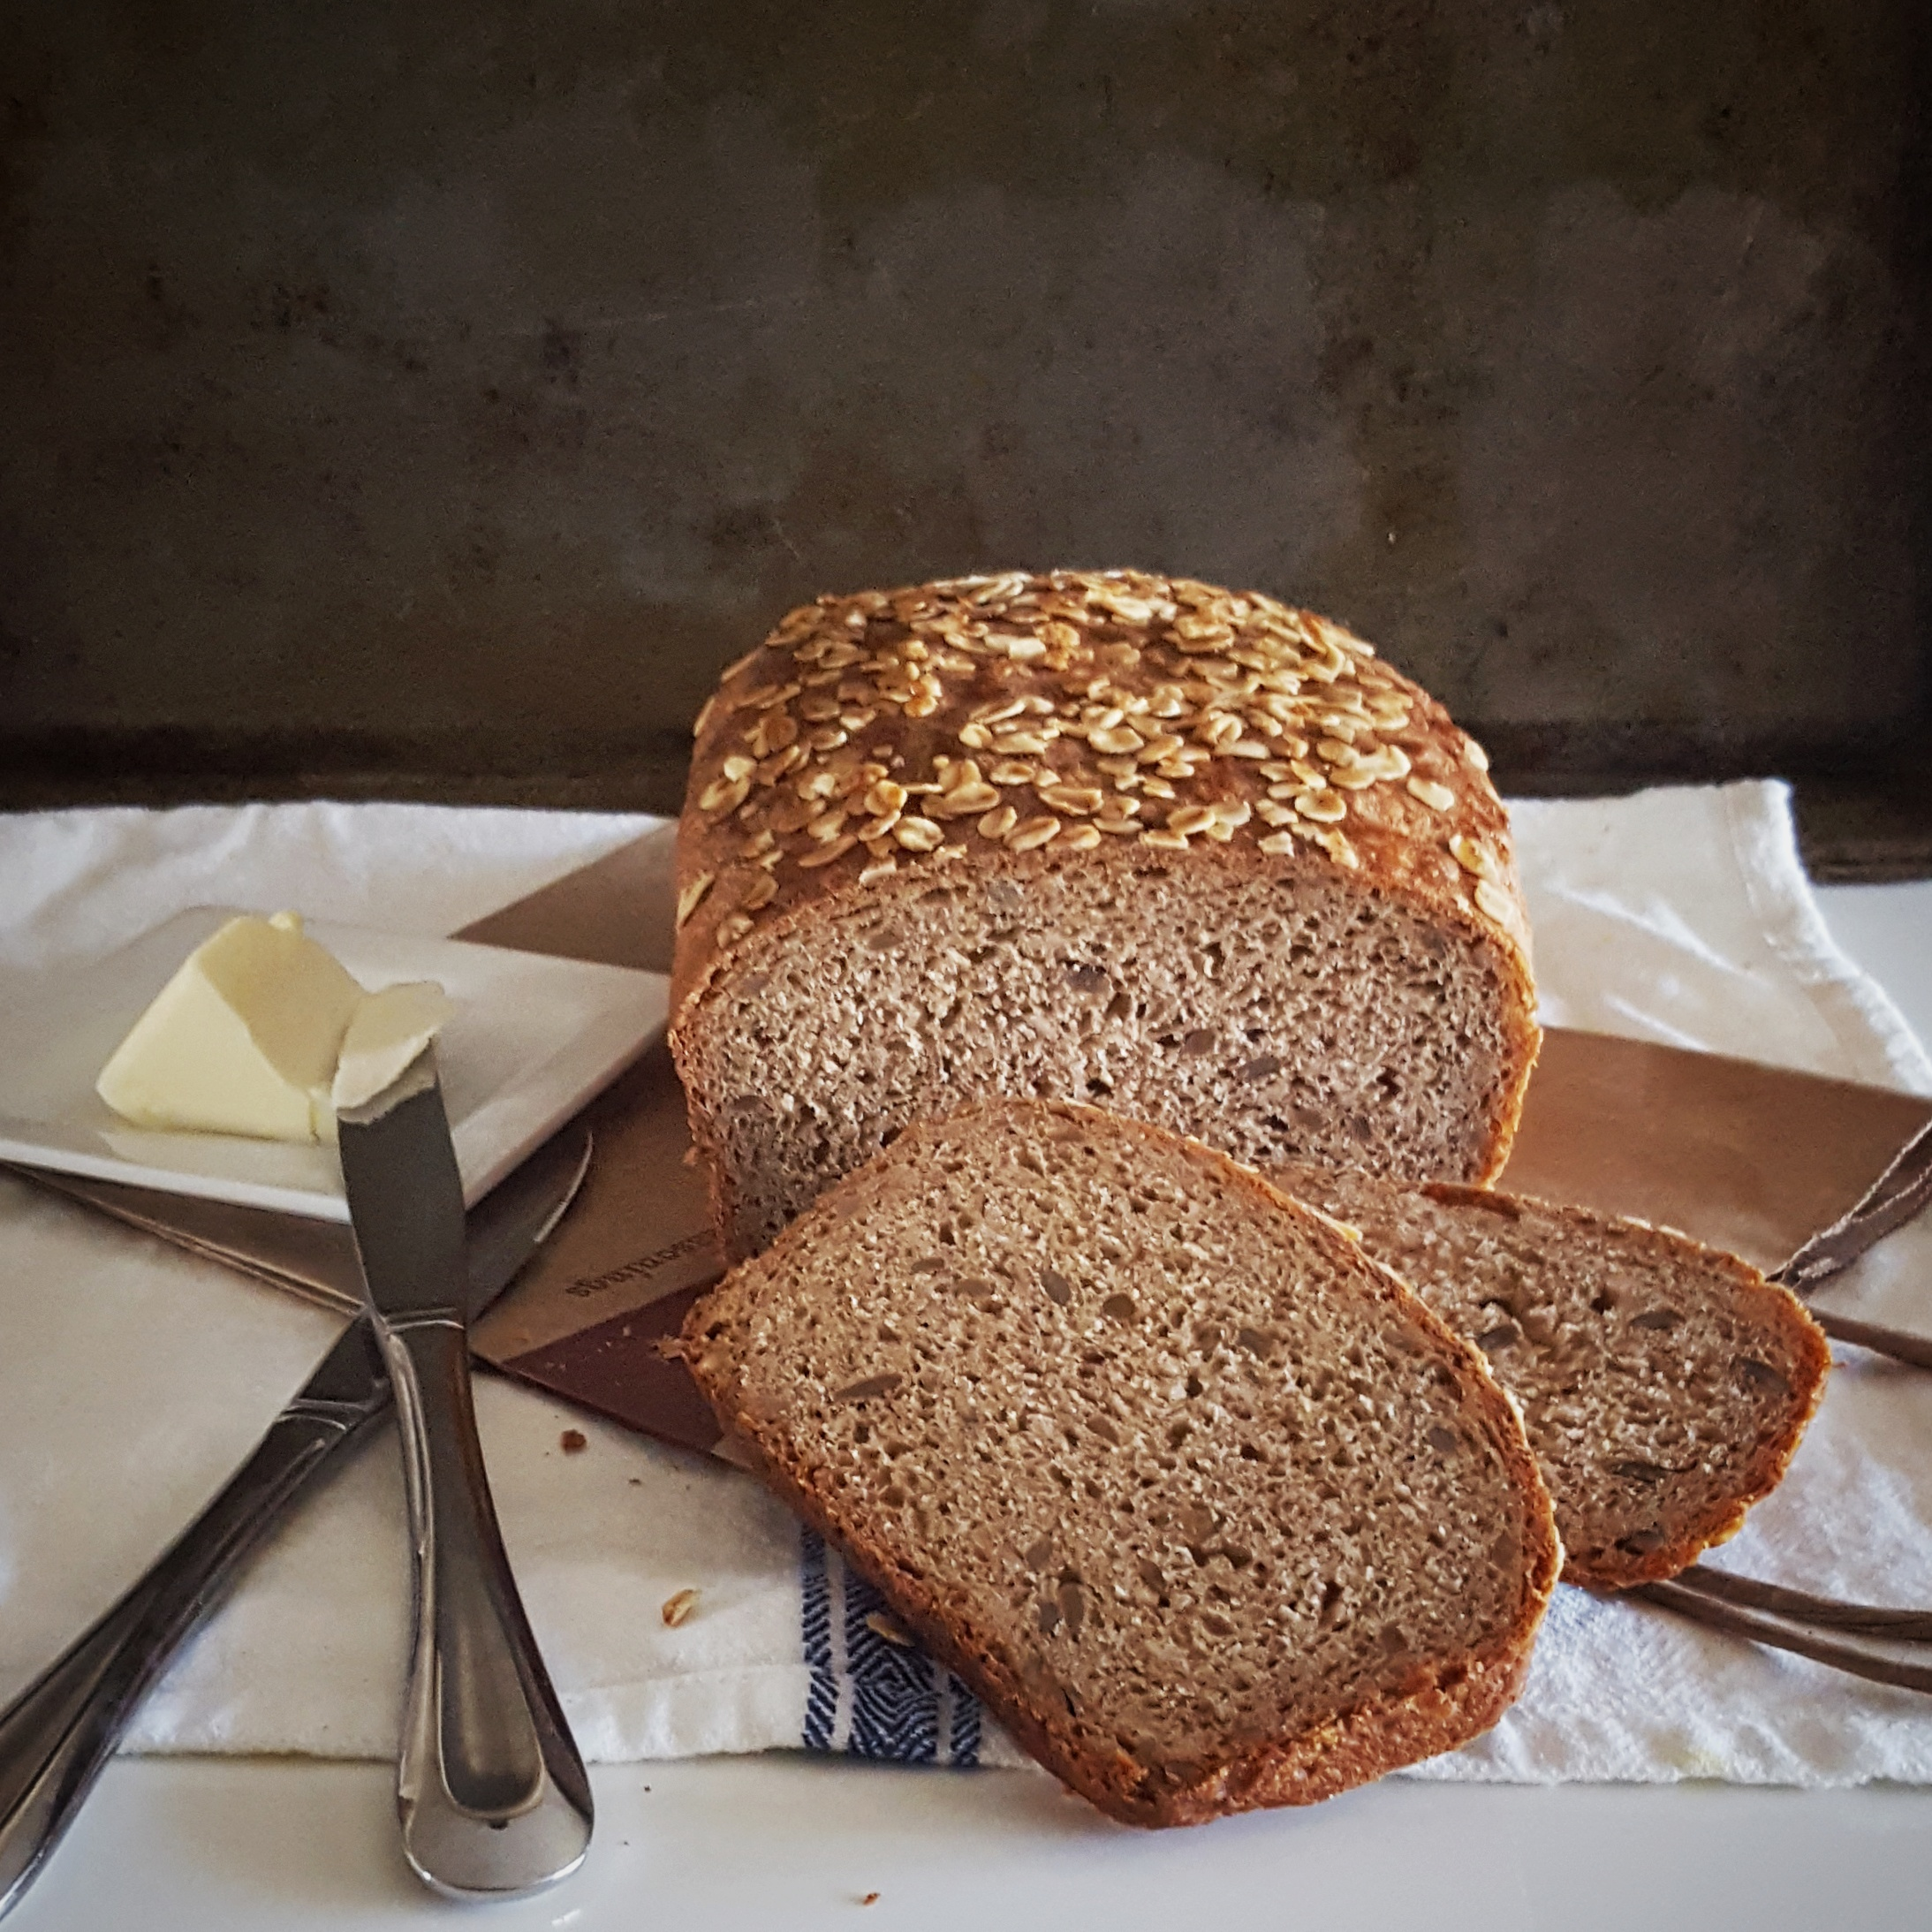 Oatmeal Honey Wheat Bread with Sunflower Seeds